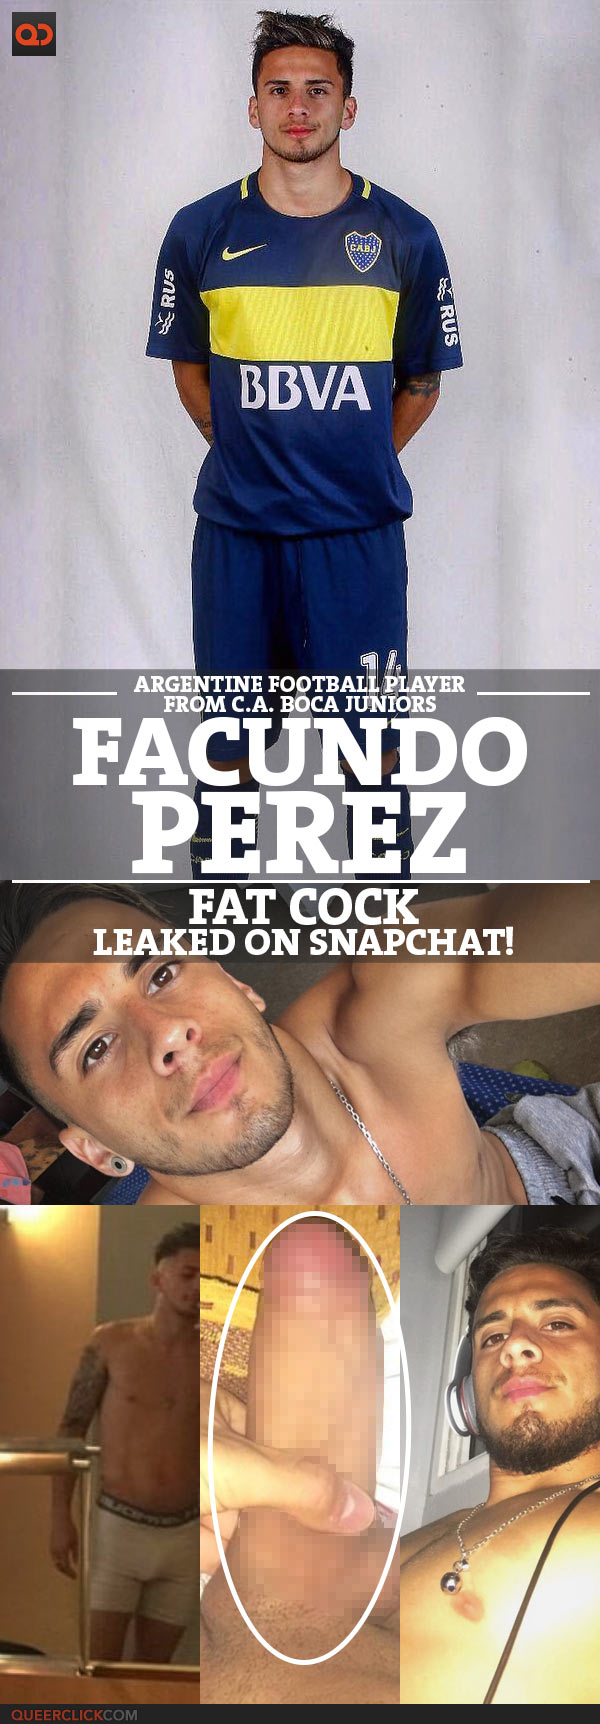 Facundo Perez, Argentine Football Player From C.A. Boca Juniors, Alleged Fat Cock Leaked On Snapchat!